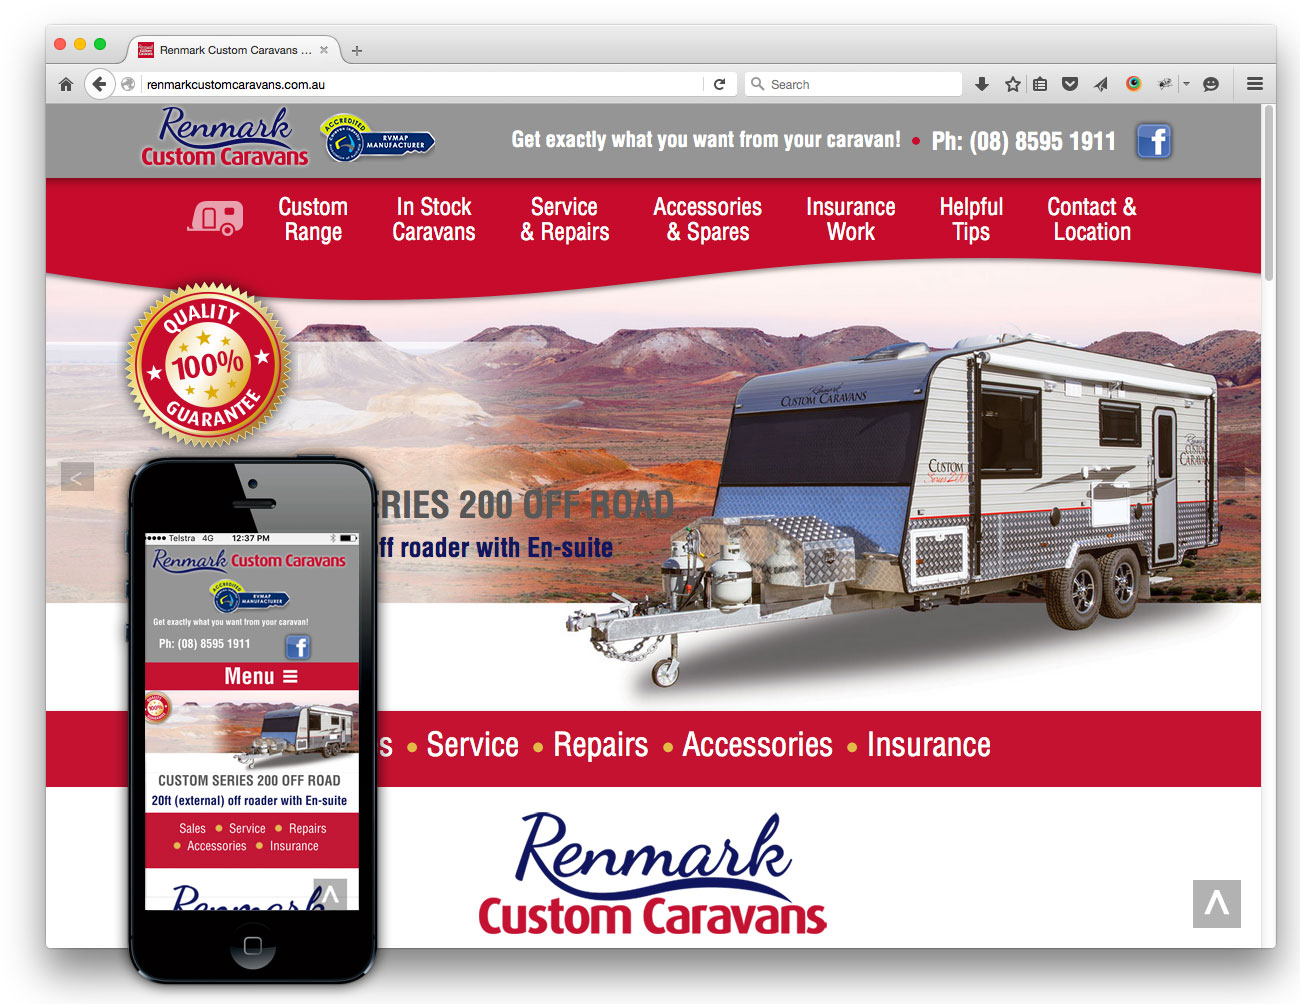 Renmark Custom Caravans website